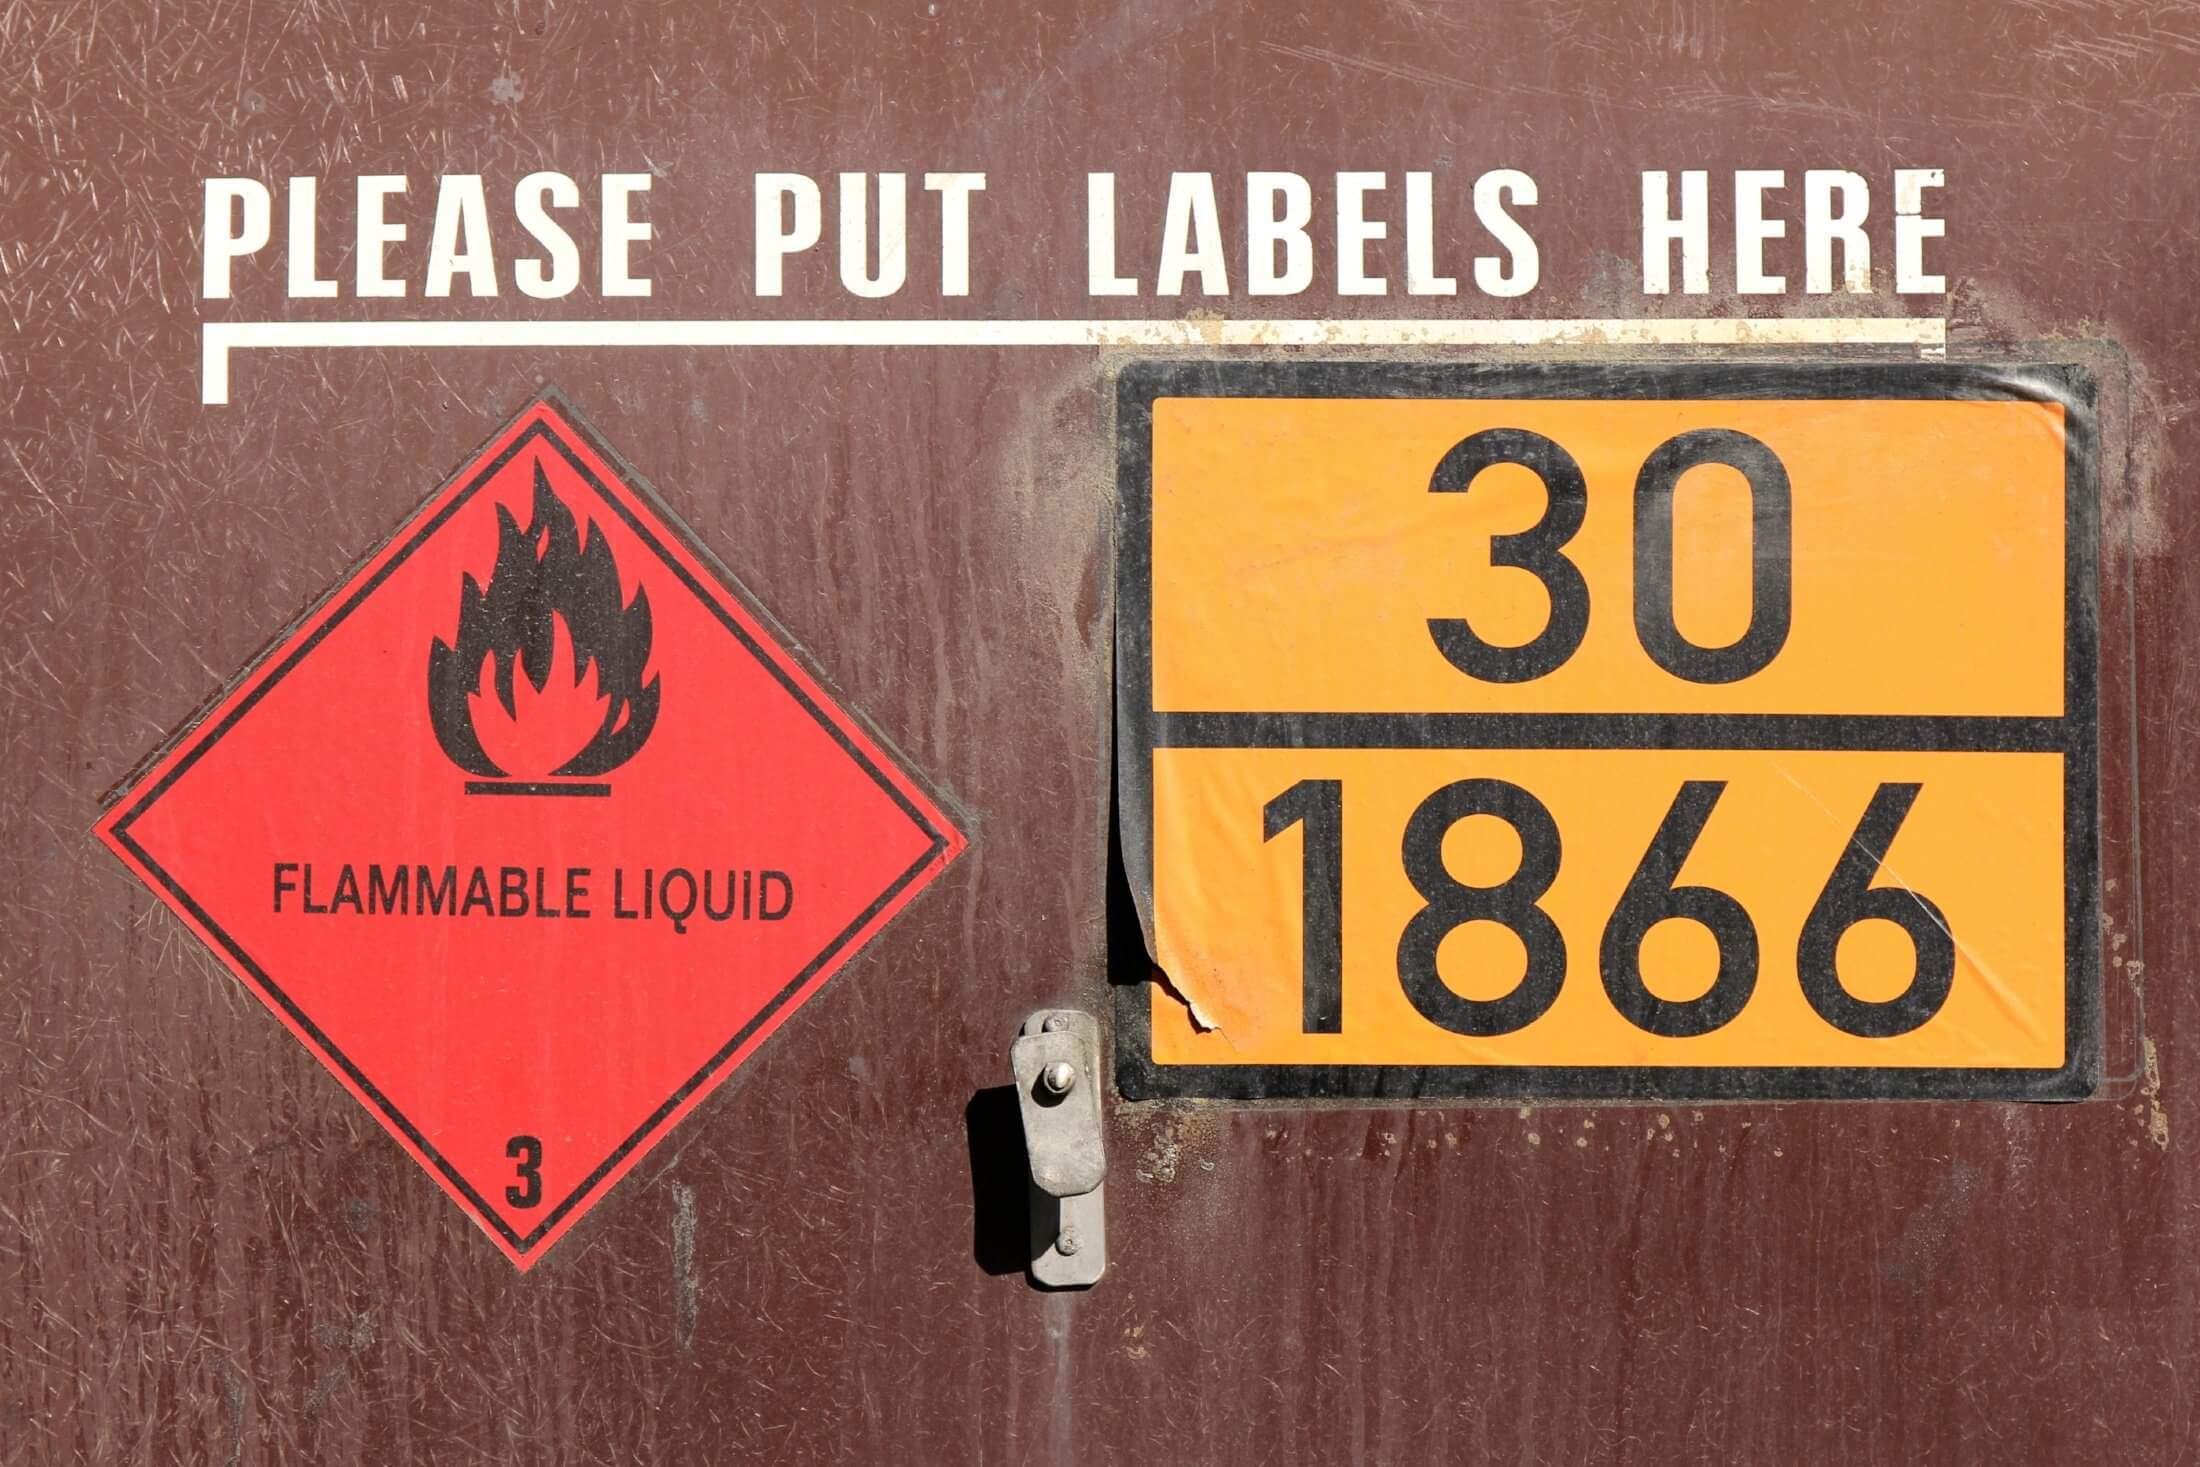 Mandatory signs for hazardous chemicals stored at your workplace